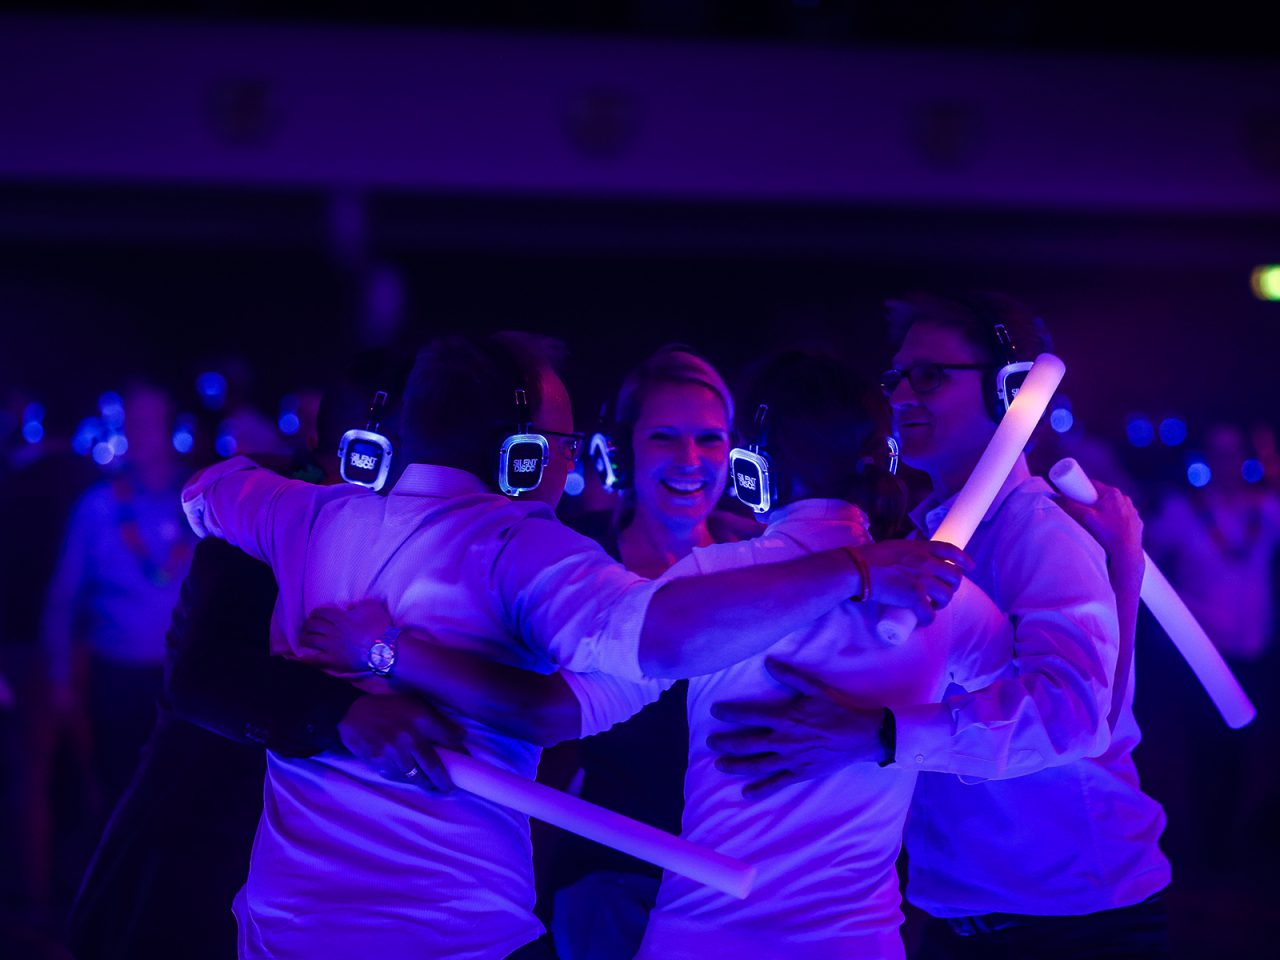 energizer voor de teambuilding tijdens company , corporate events, Will give you energy-L02